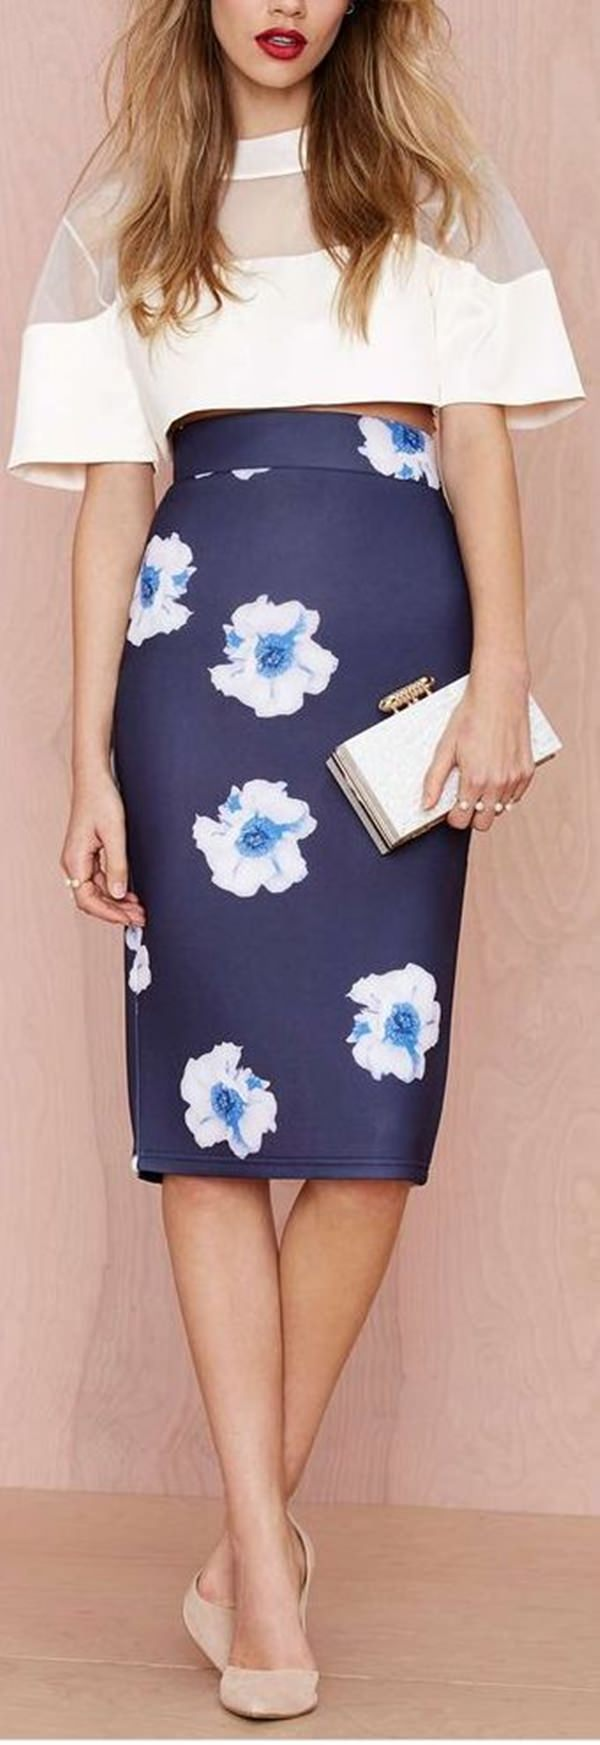 pencil skirt outfits 32